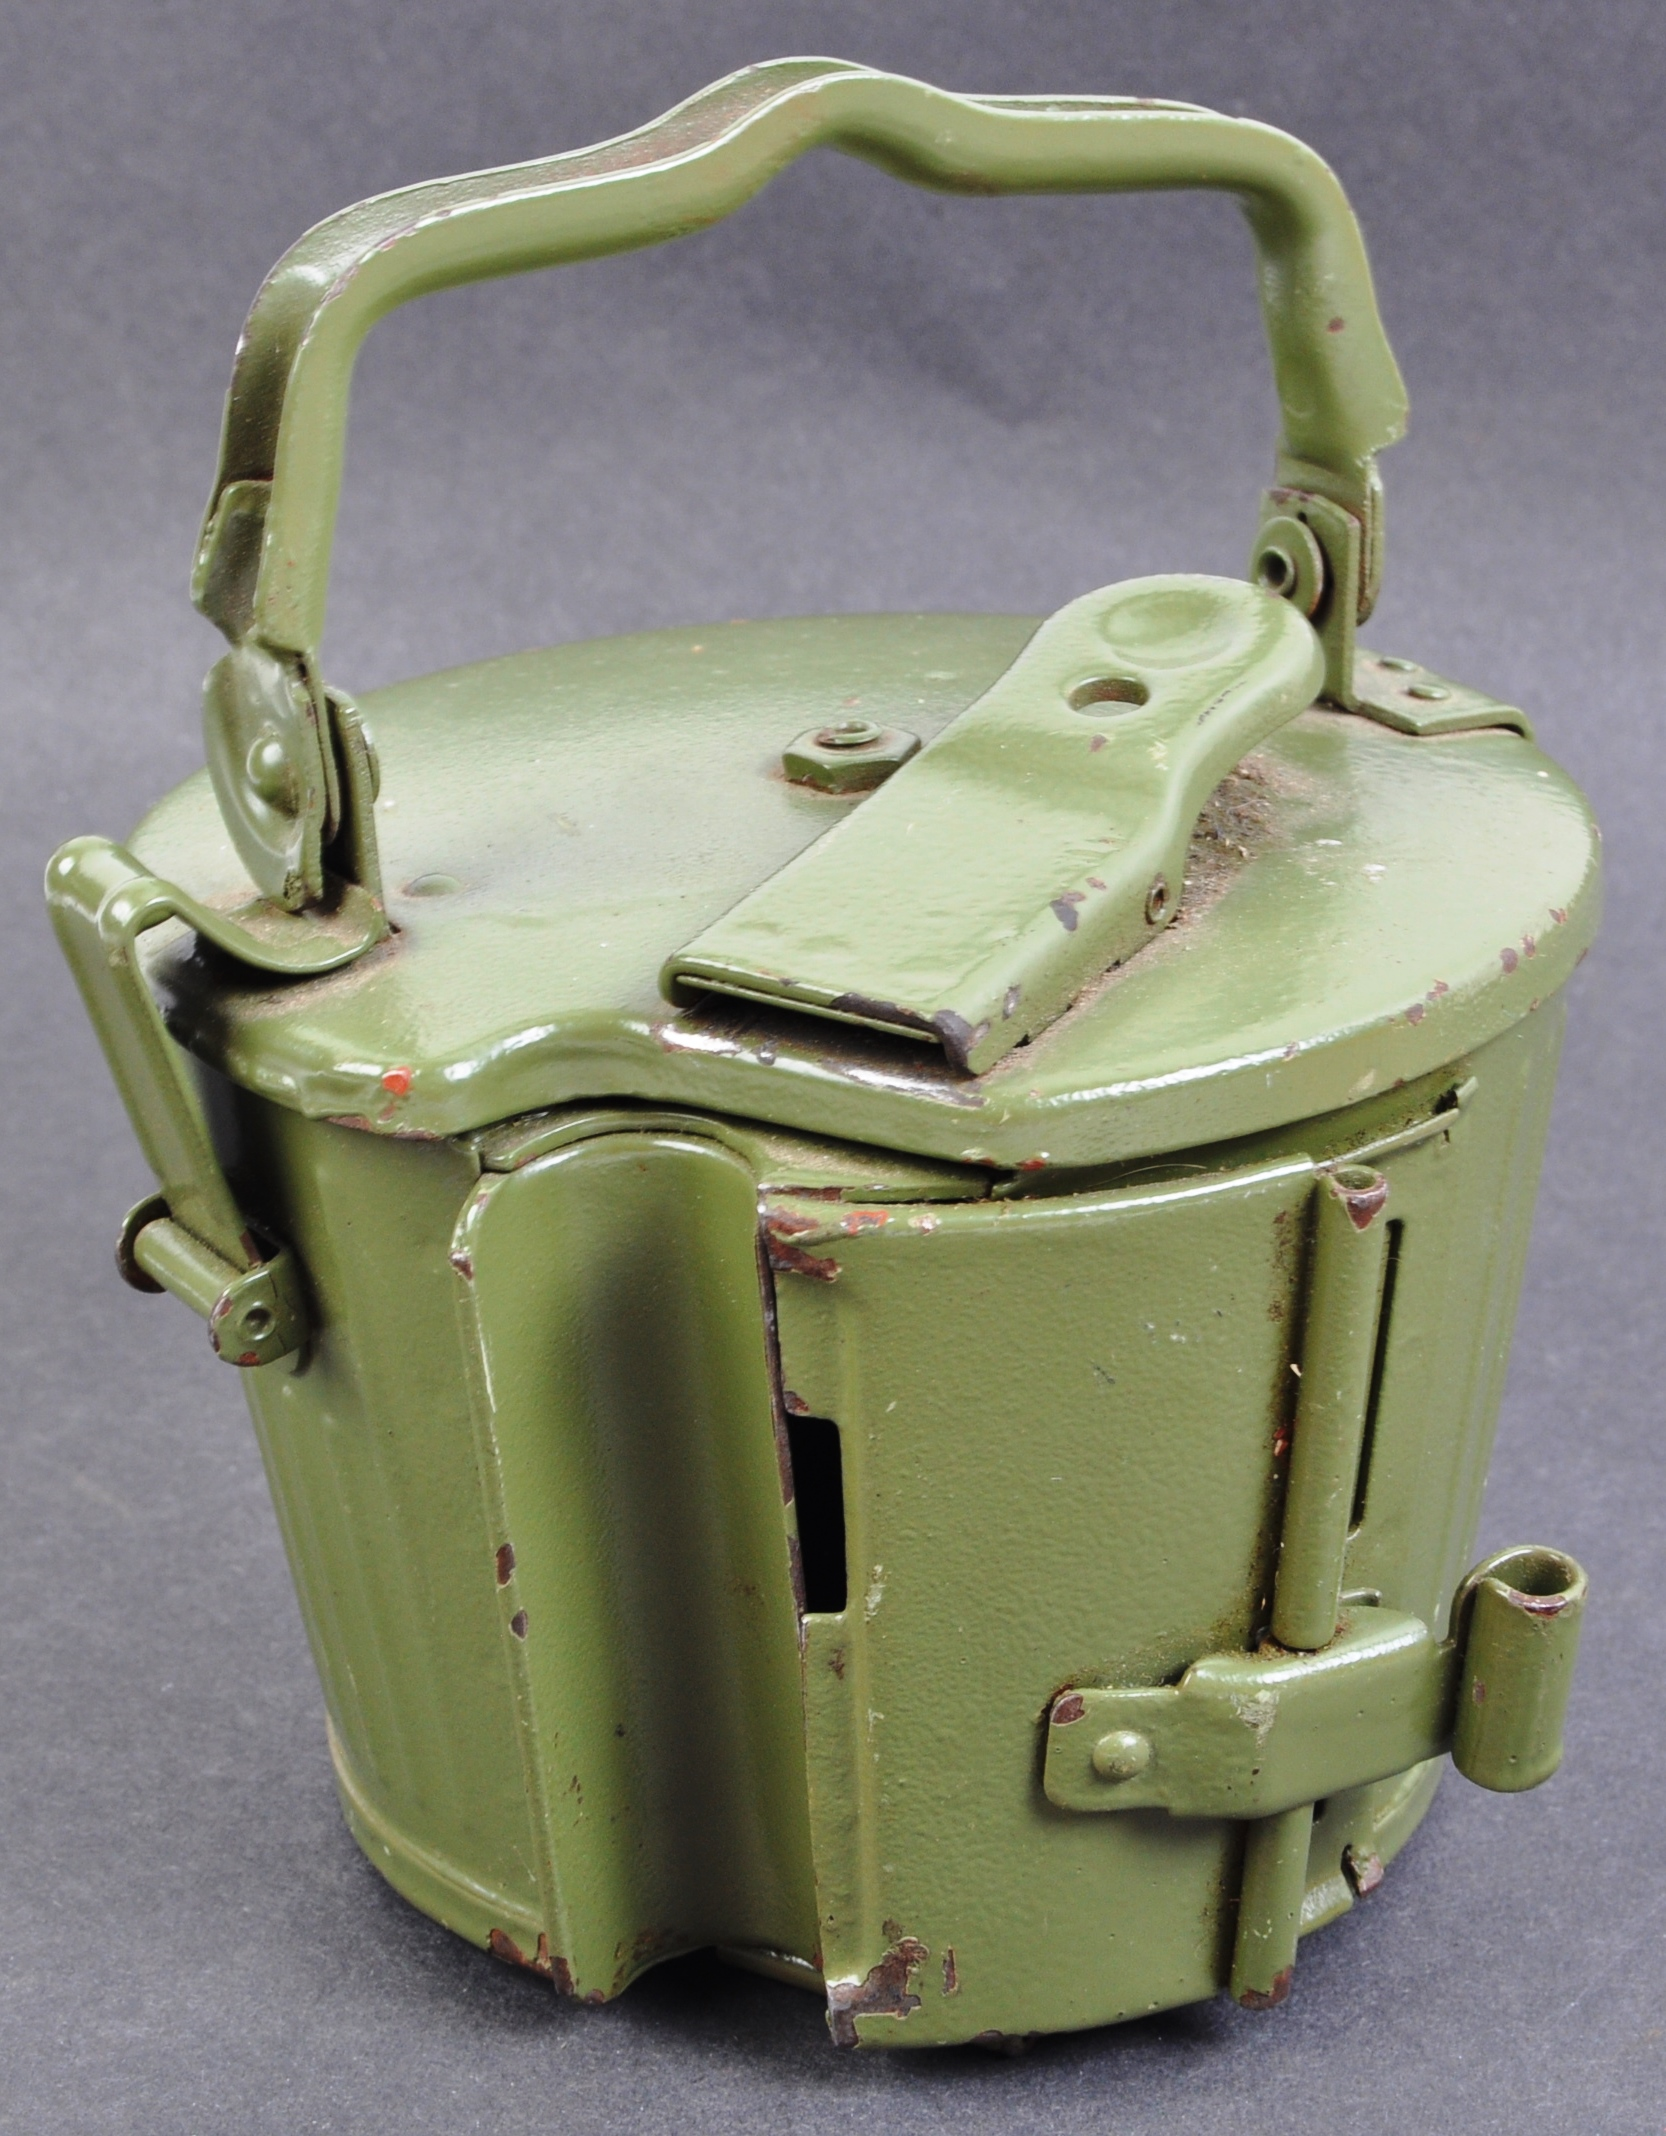 TWO WWII SECOND WORLD WAR TYPE GERMAN REPLICA ITEMS - Image 4 of 9